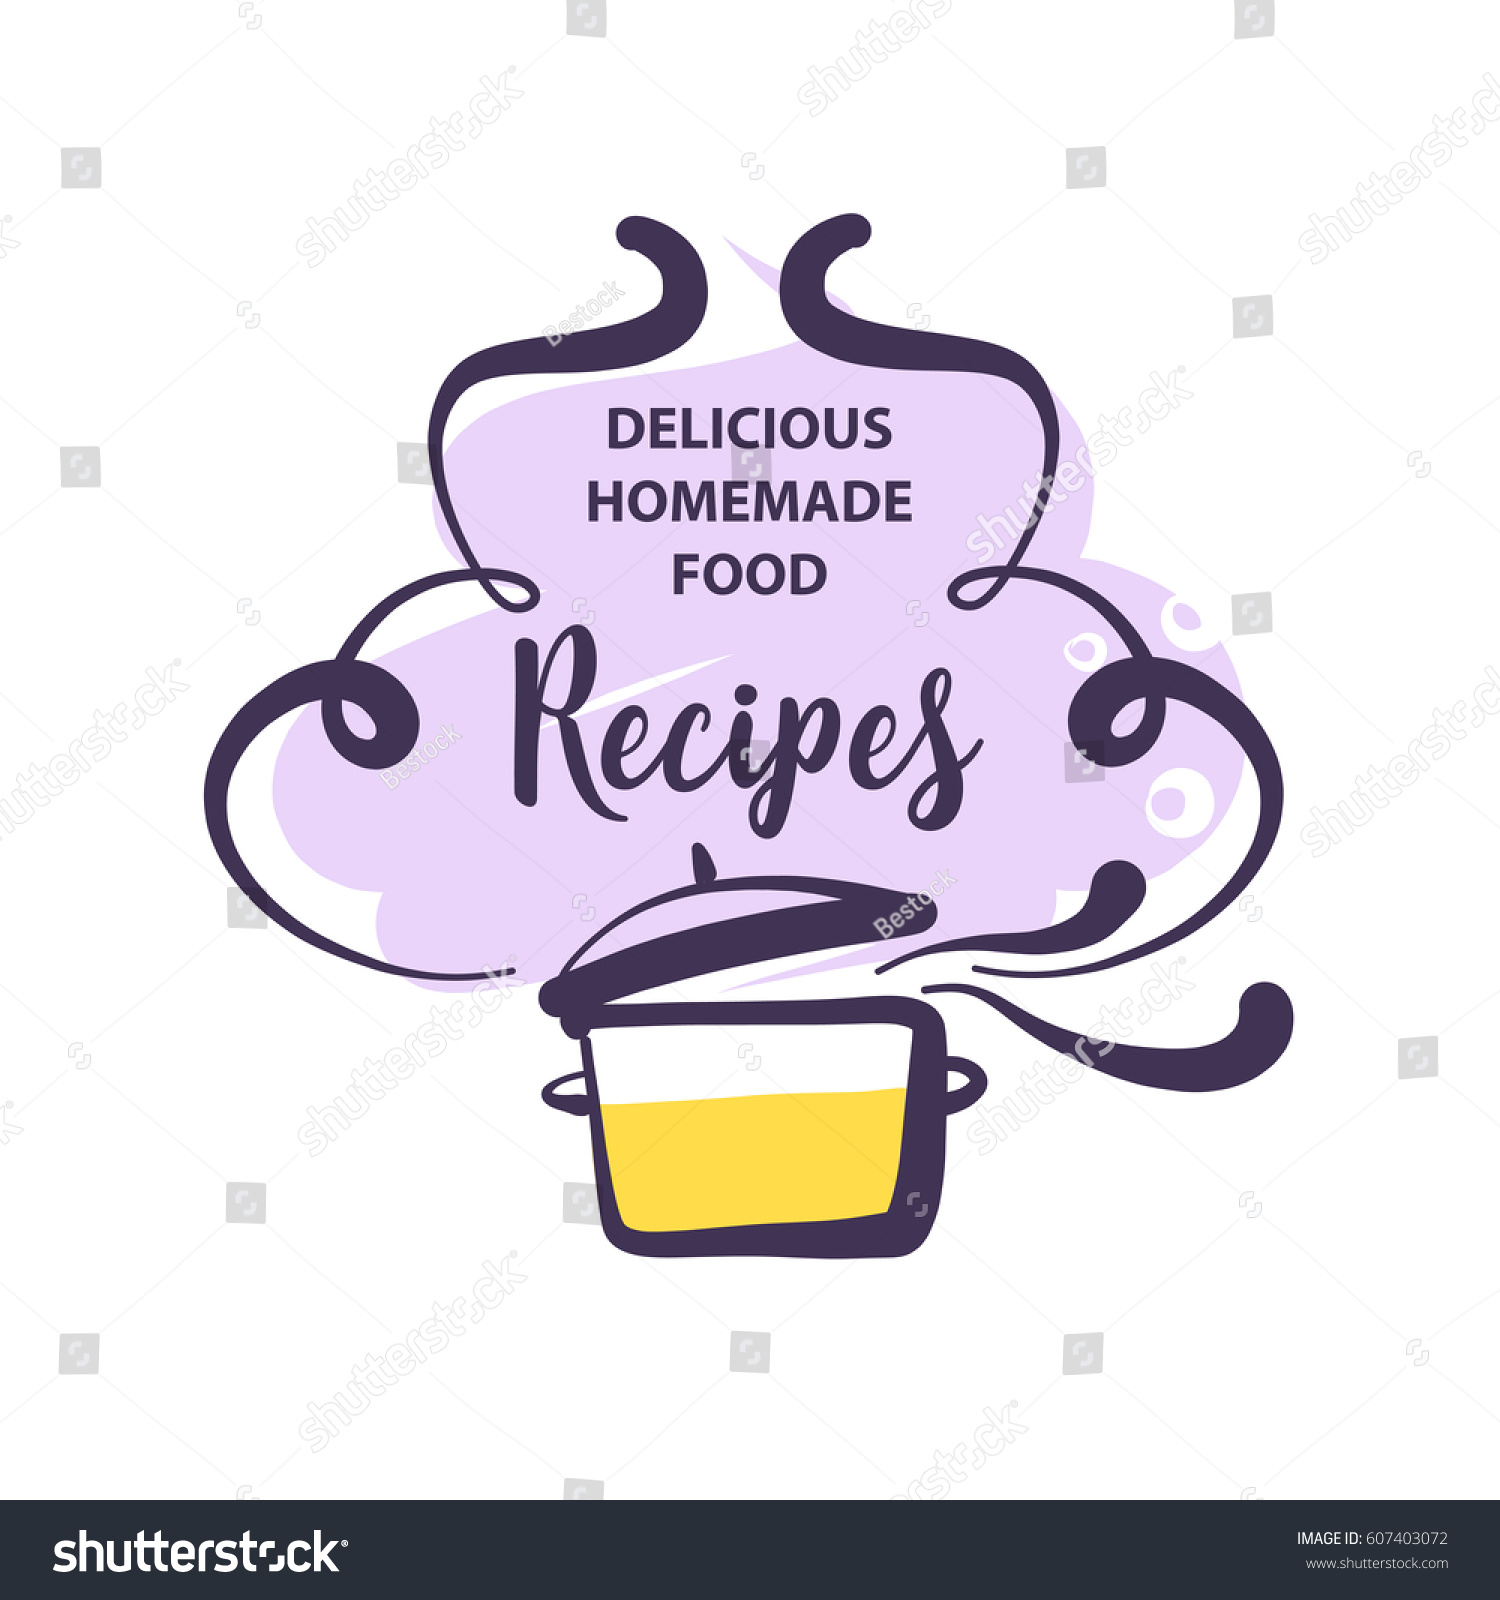 Handdrawn logo delicious homemade food recipe stock vector royalty hand drawn logo for delicious homemade food recipe concept template logotype with abstract cooking forumfinder Choice Image